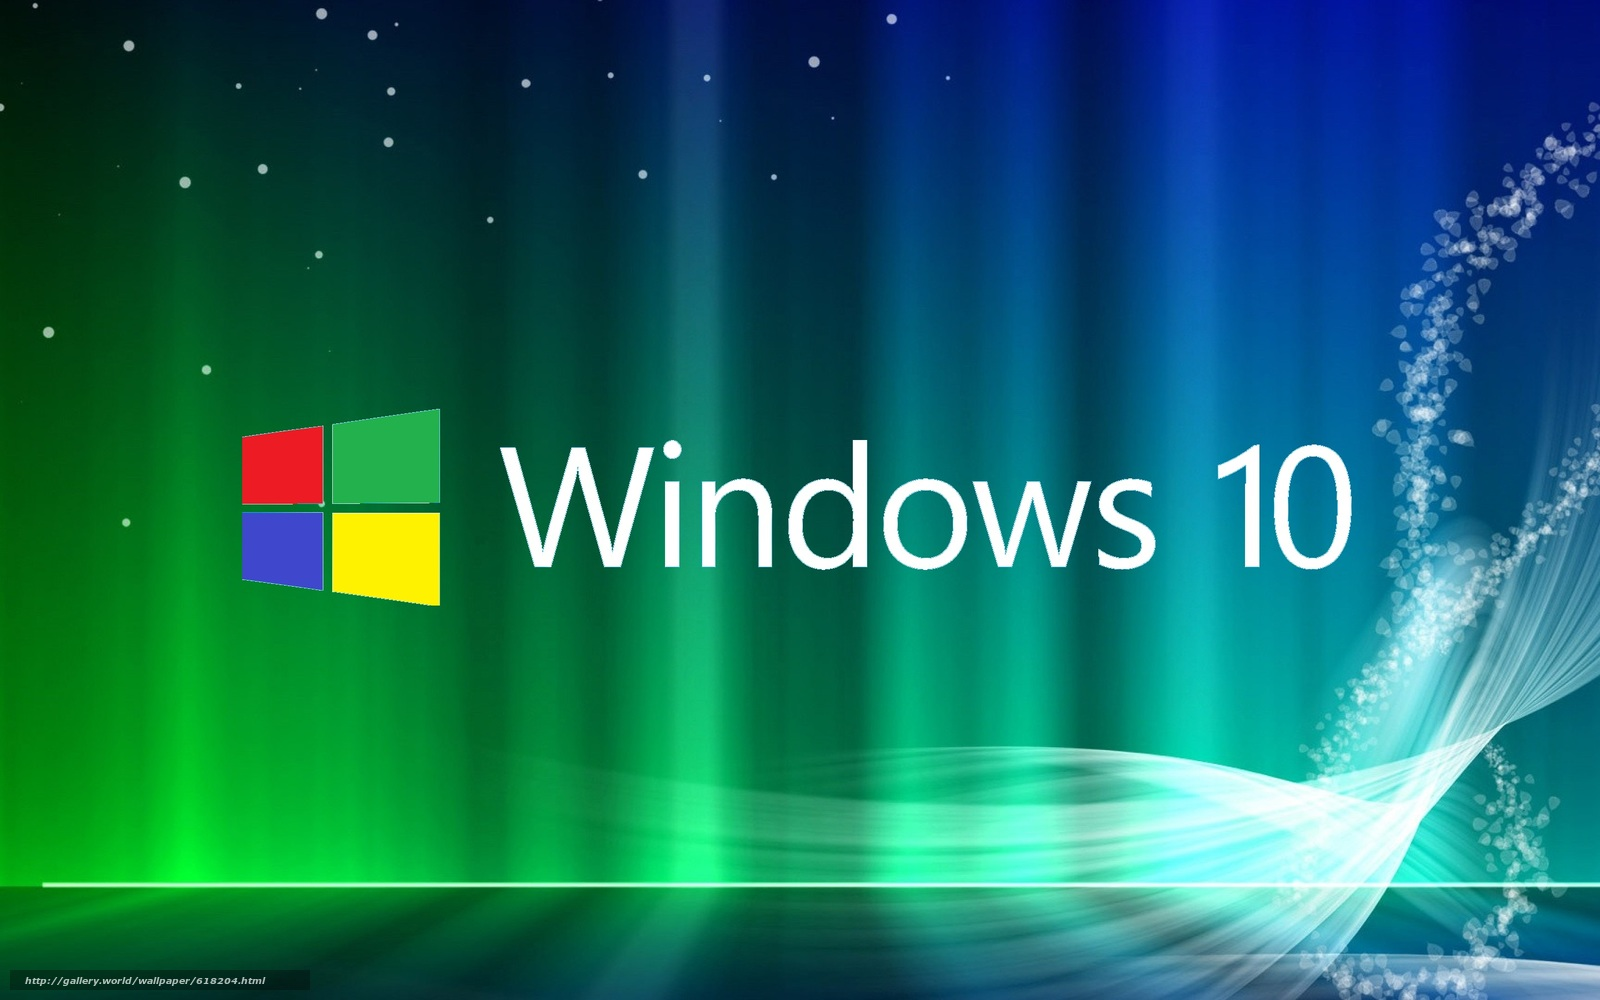 Windows 10 Original Wallpaper: Windows 10, Wallpaper, обои, фото, обои